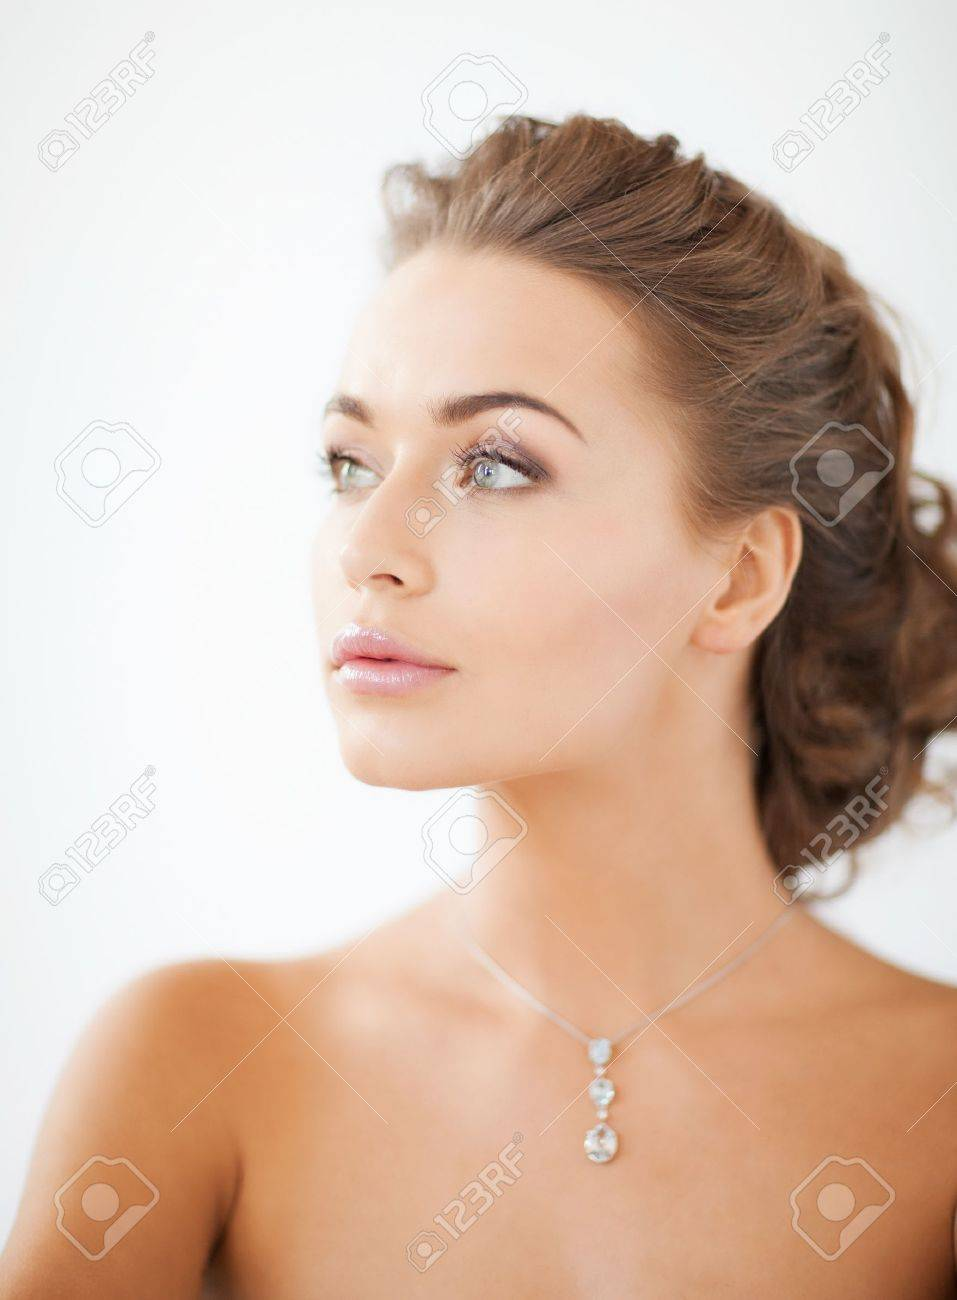 close up of beautiful woman wearing shiny diamond necklace Stock Photo - 19483975